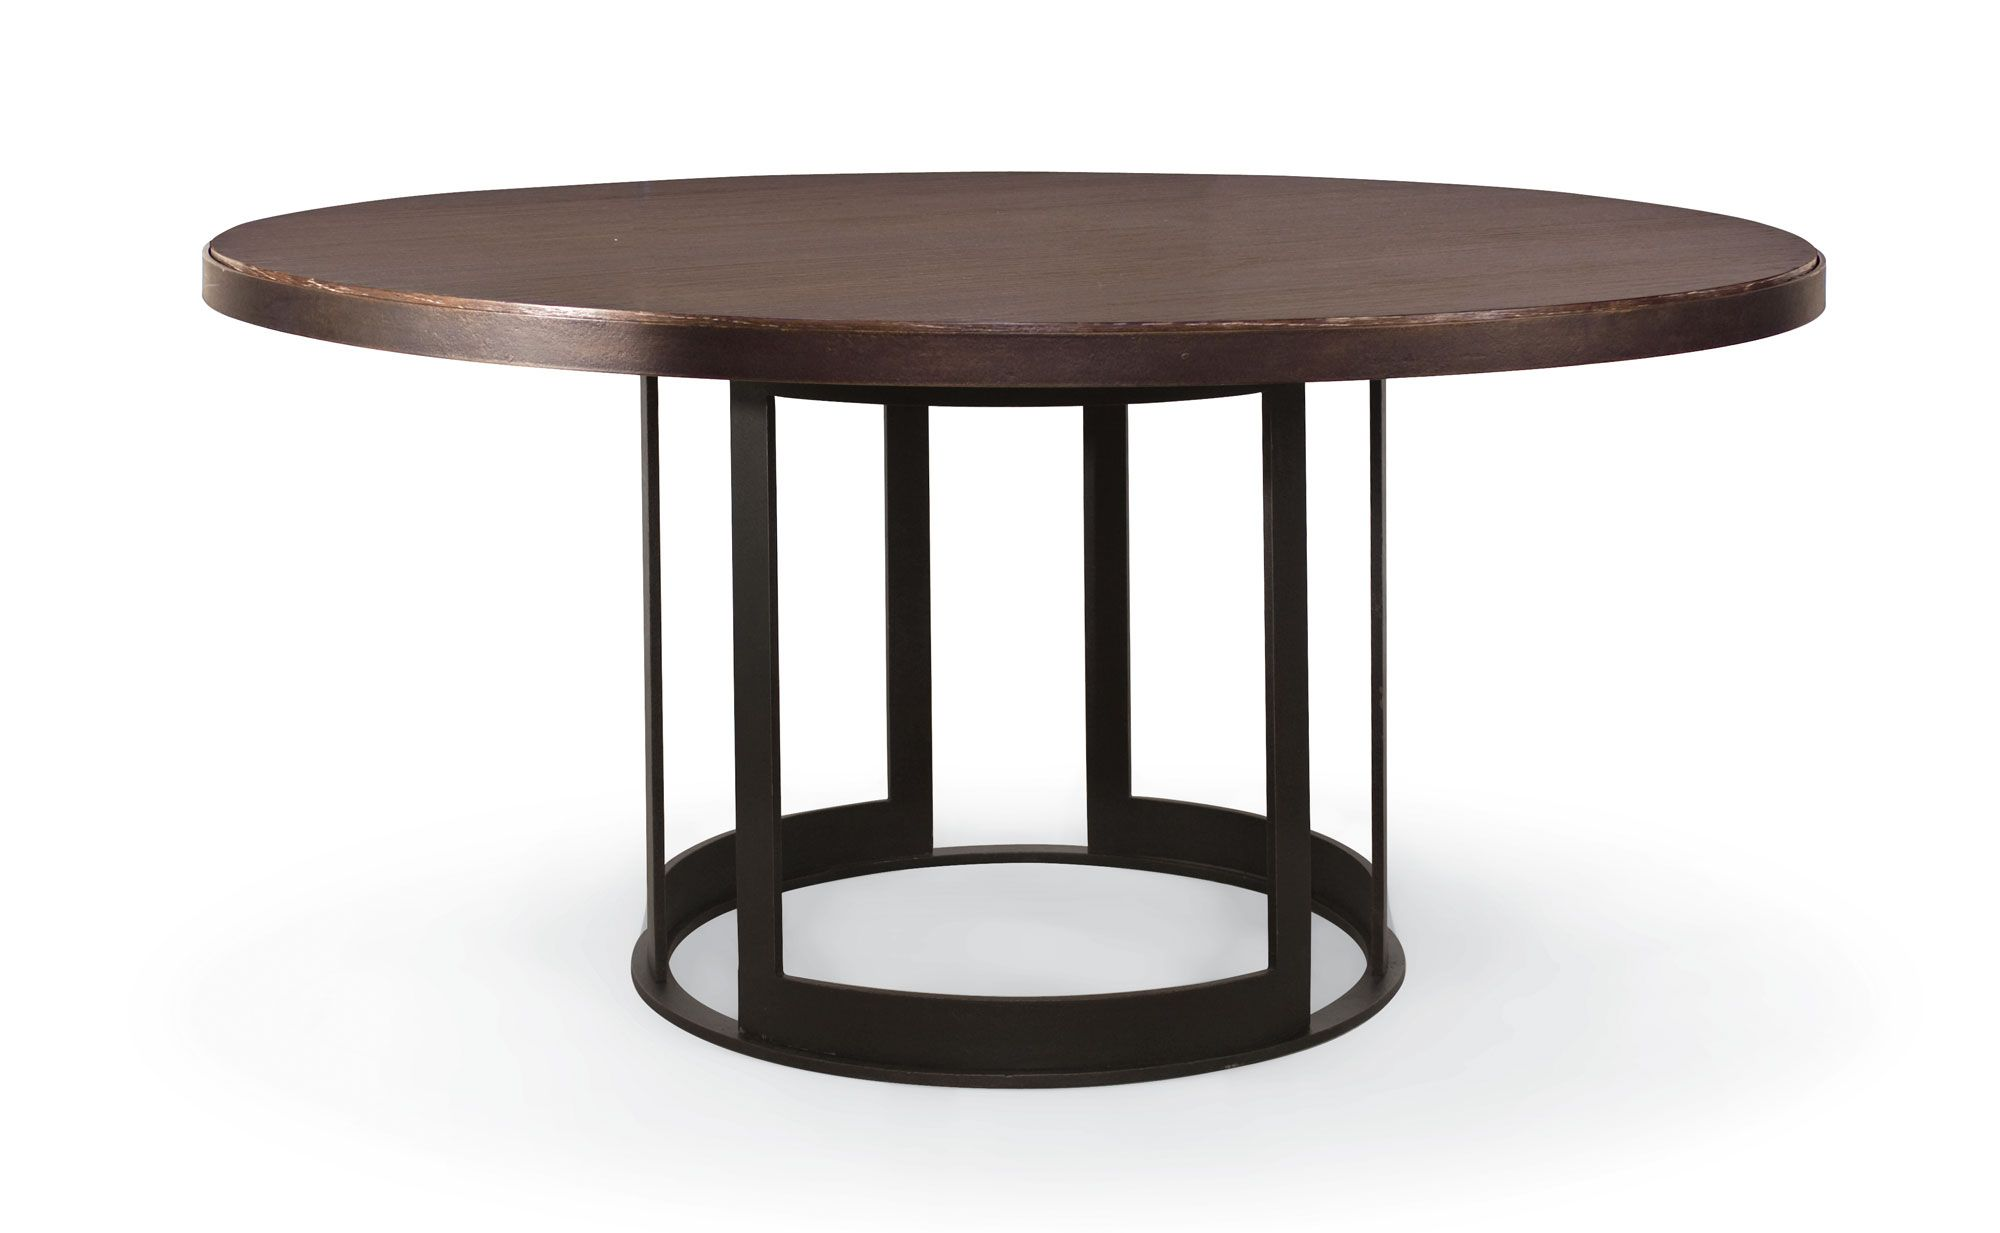 Bernhardt Pacific Canyon Round Dining Table Bn 349 272 273 Round